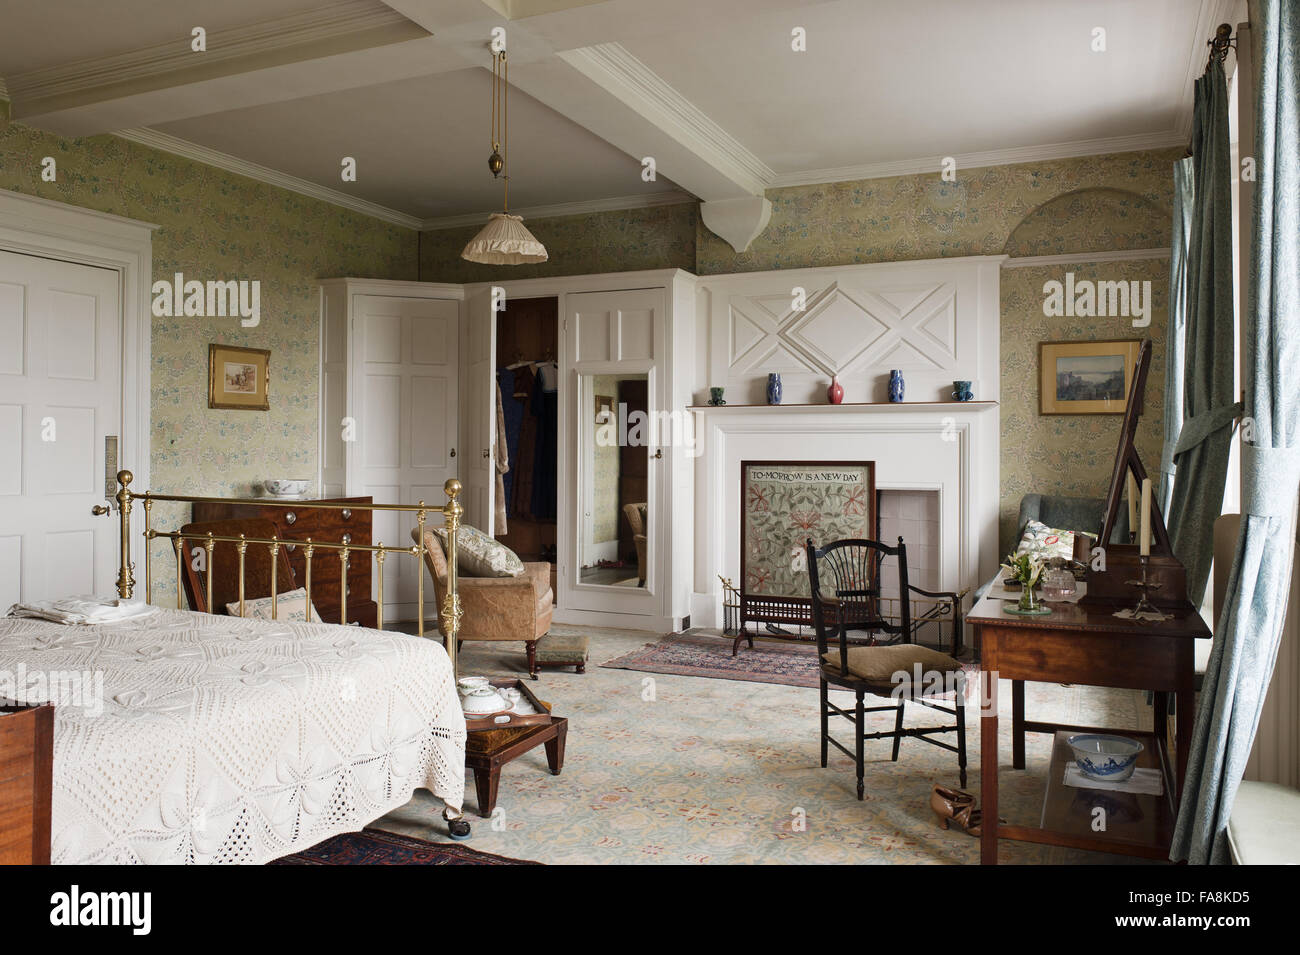 Amazing The Larkspur Bedroom At Standen, West Sussex